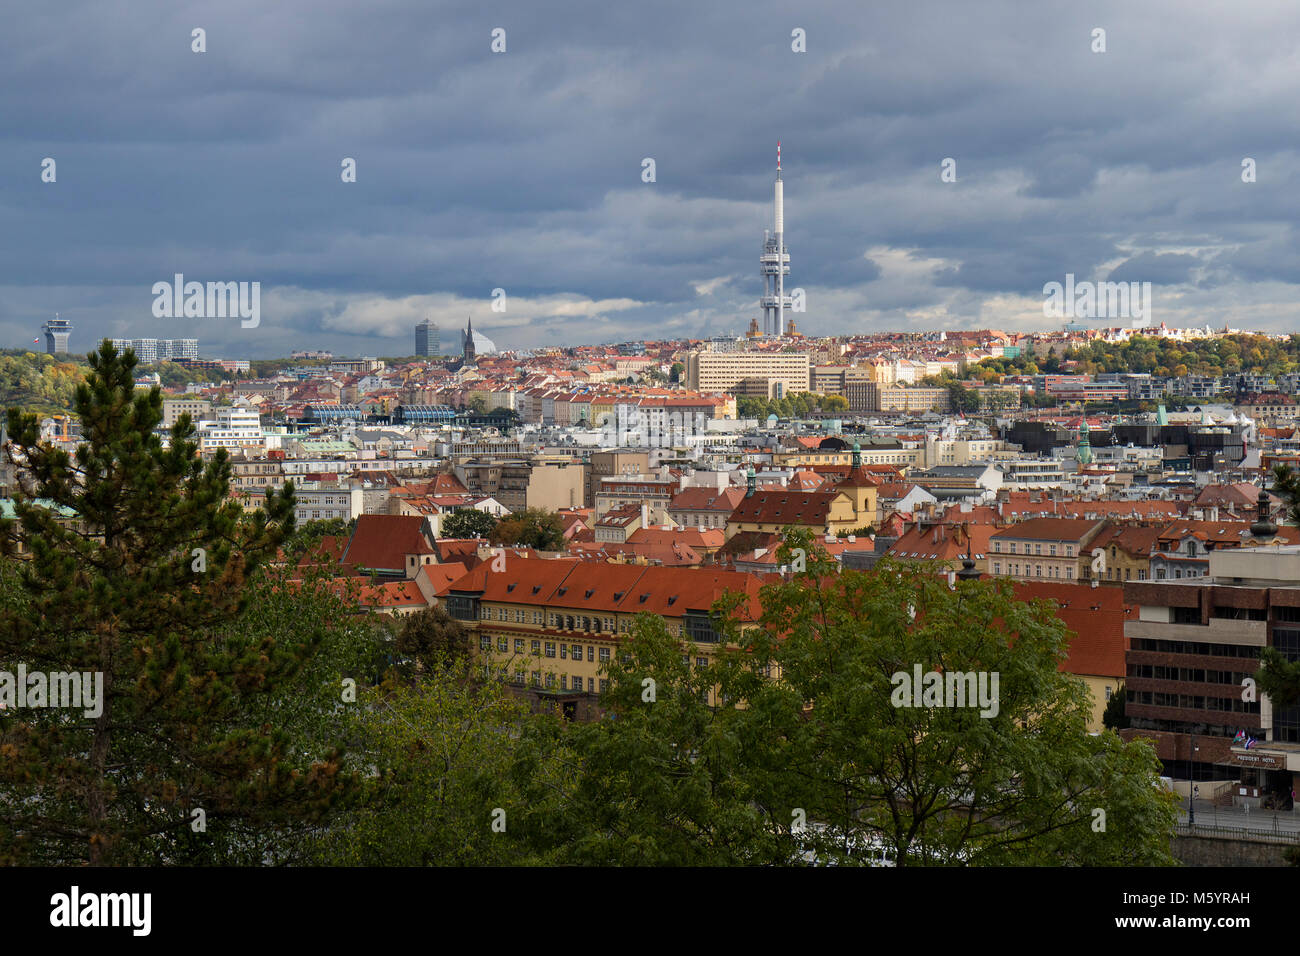 Prague, Czech Republic - October 8, 2017: Zizkov Television tower above the city horizon in autumn - Stock Image